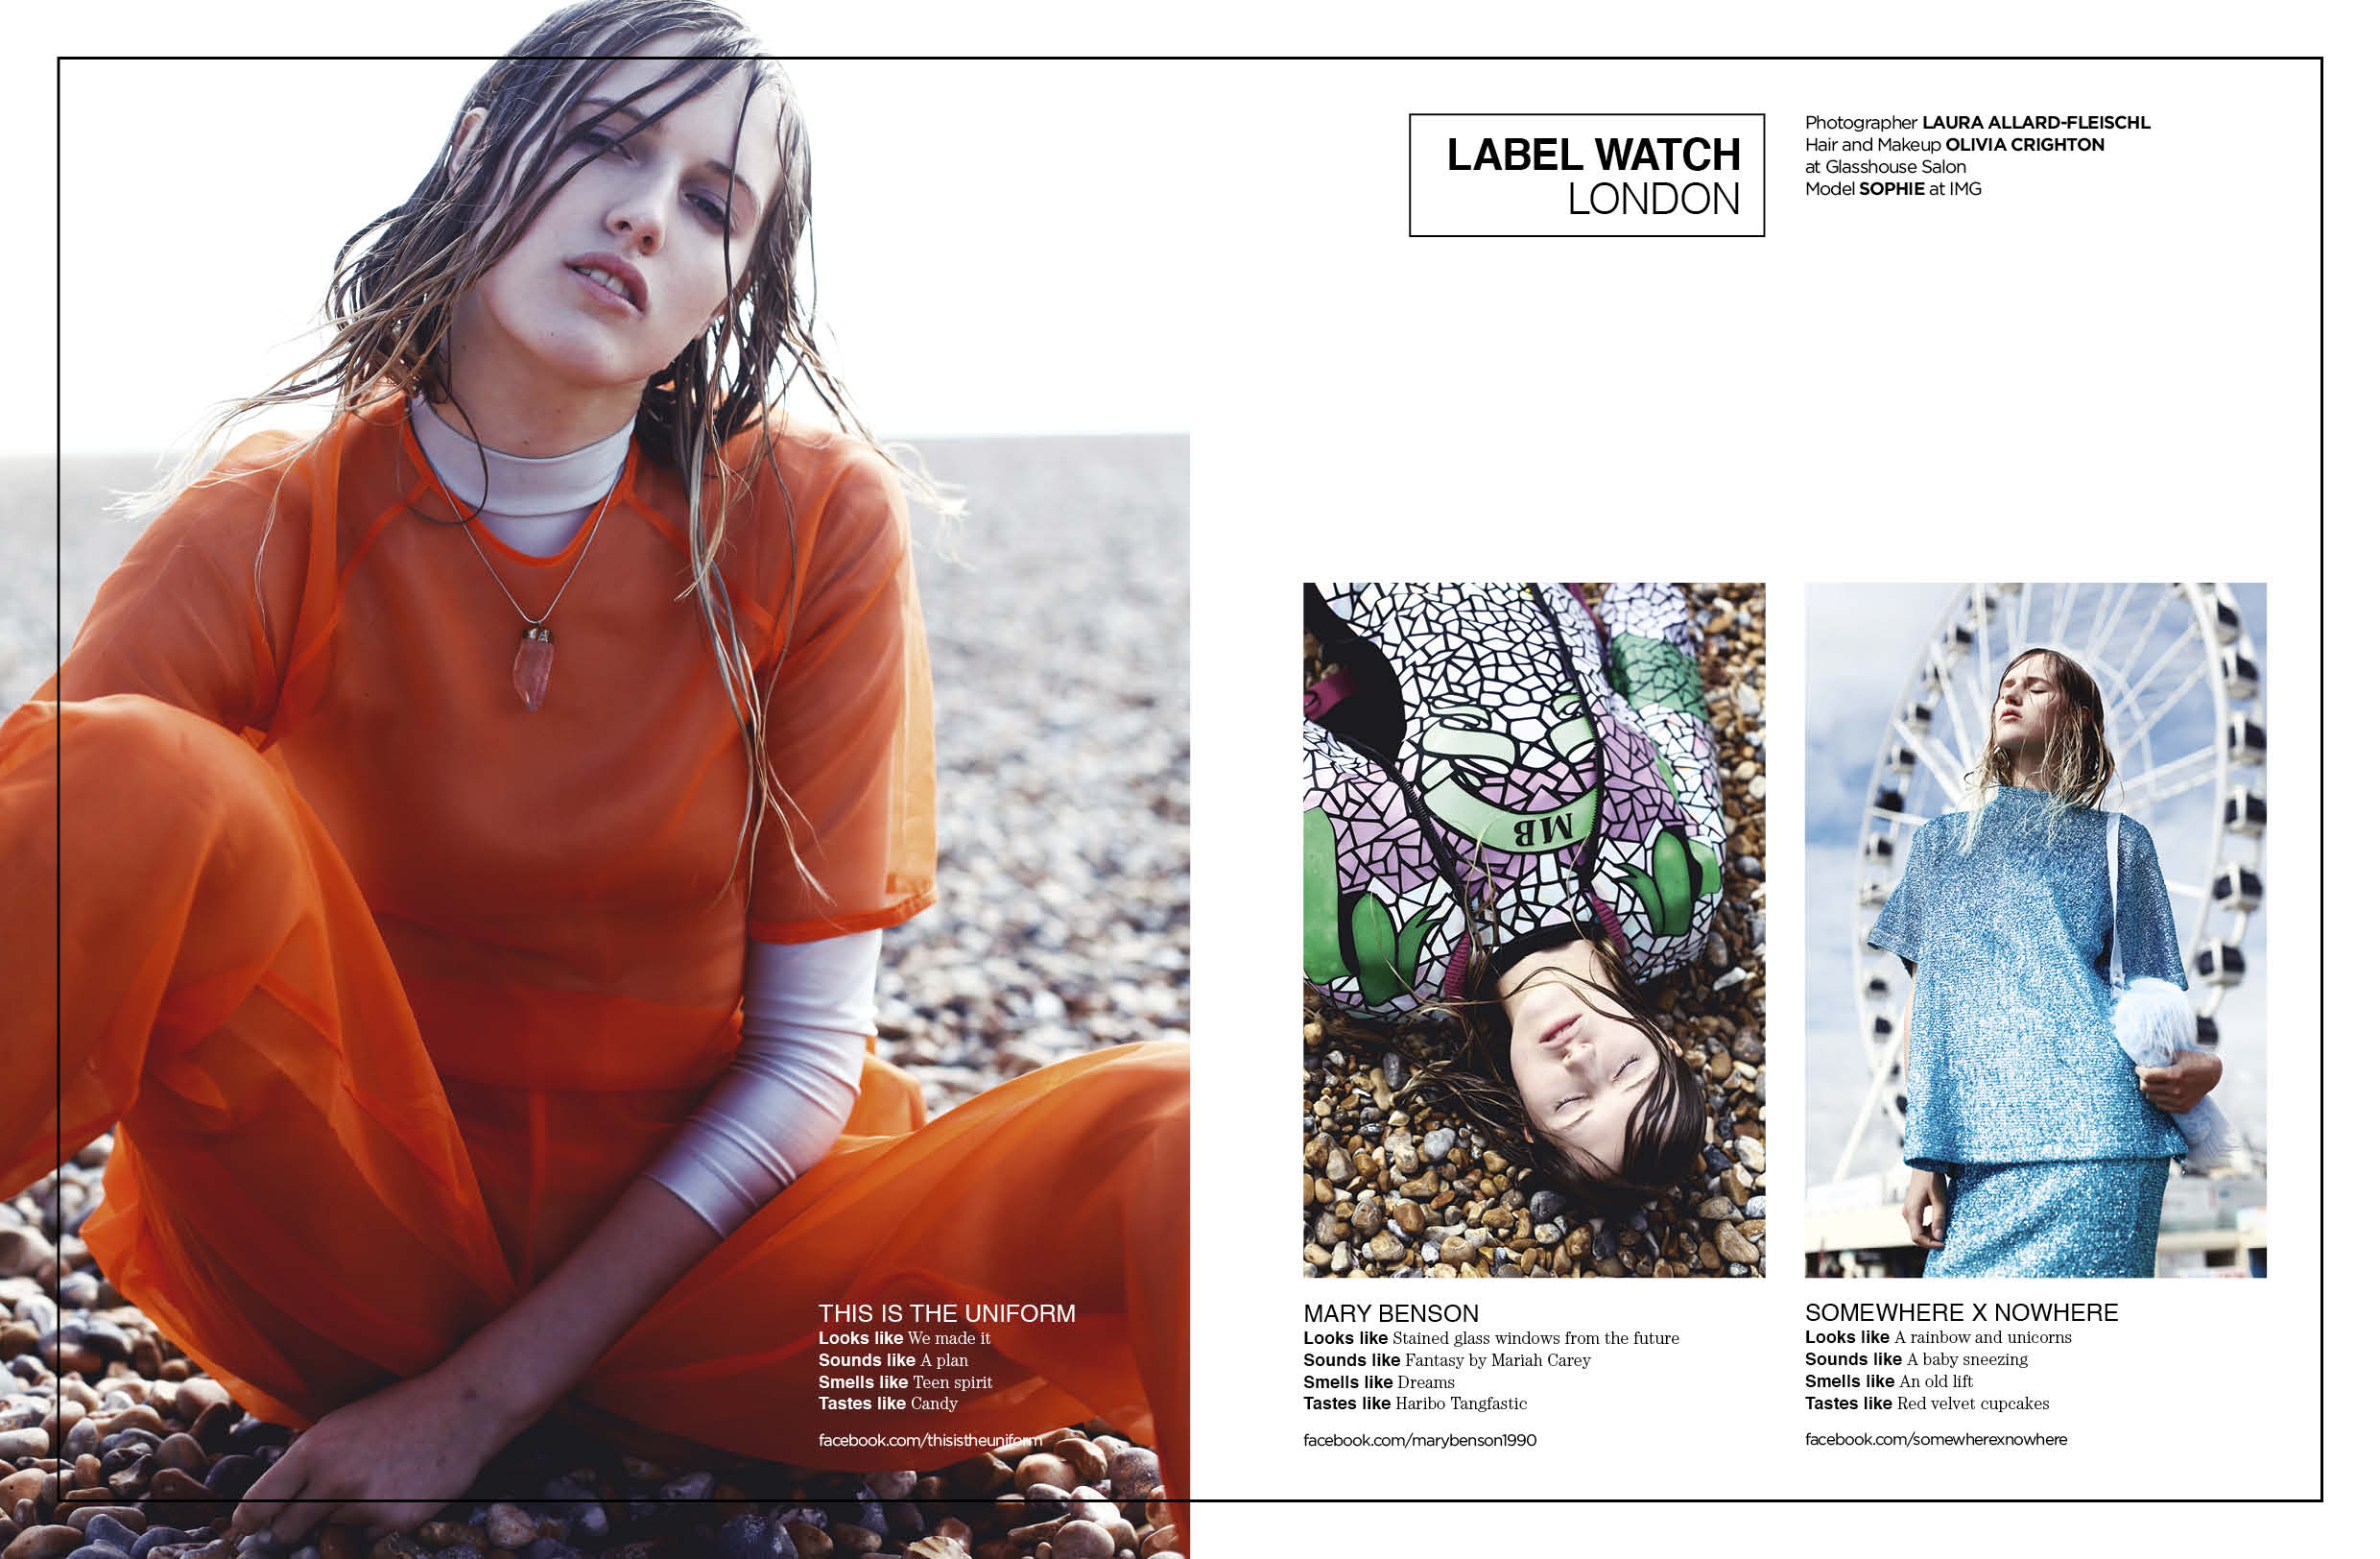 Featured in Catalogue Magazine Issue 6 - Label Watch